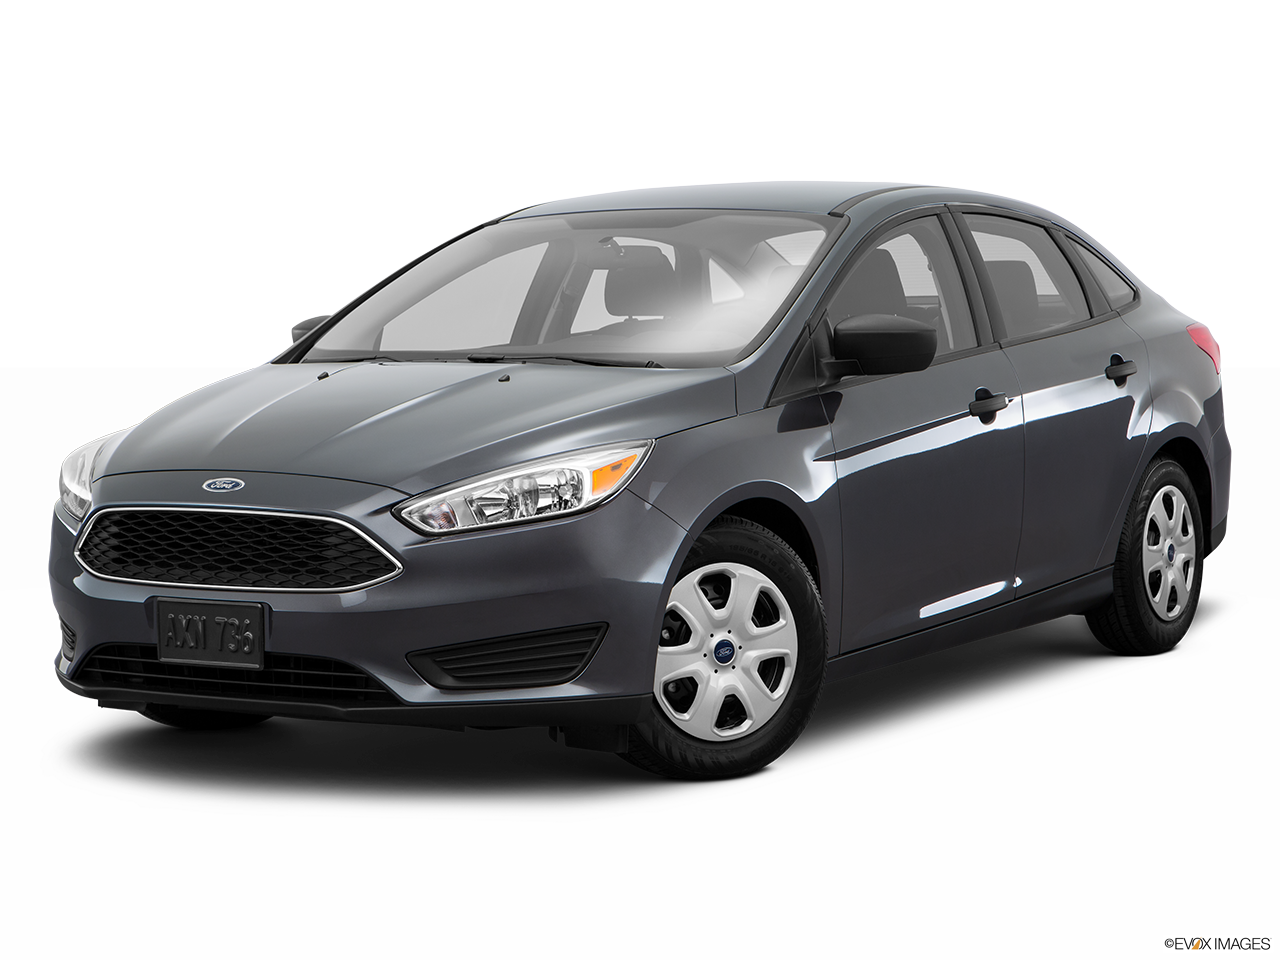 Test Drive A 2016 Ford Focus at Galpin Ford in Los Angeles